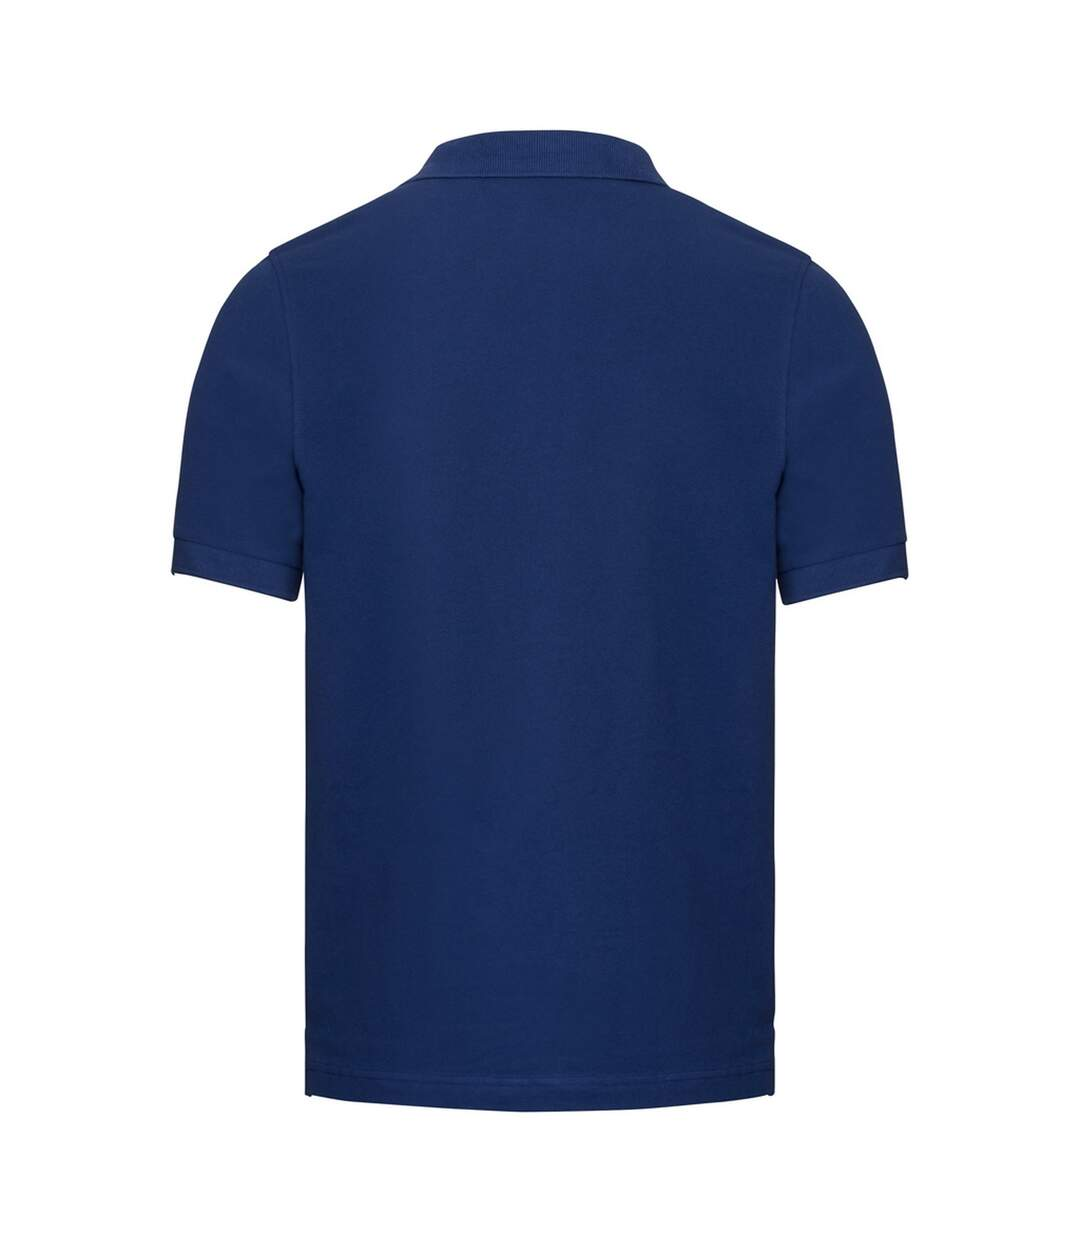 Russell Mens Tailored Stretch Pique Polo Shirt (Bright Royal Blue) - UTPC3570